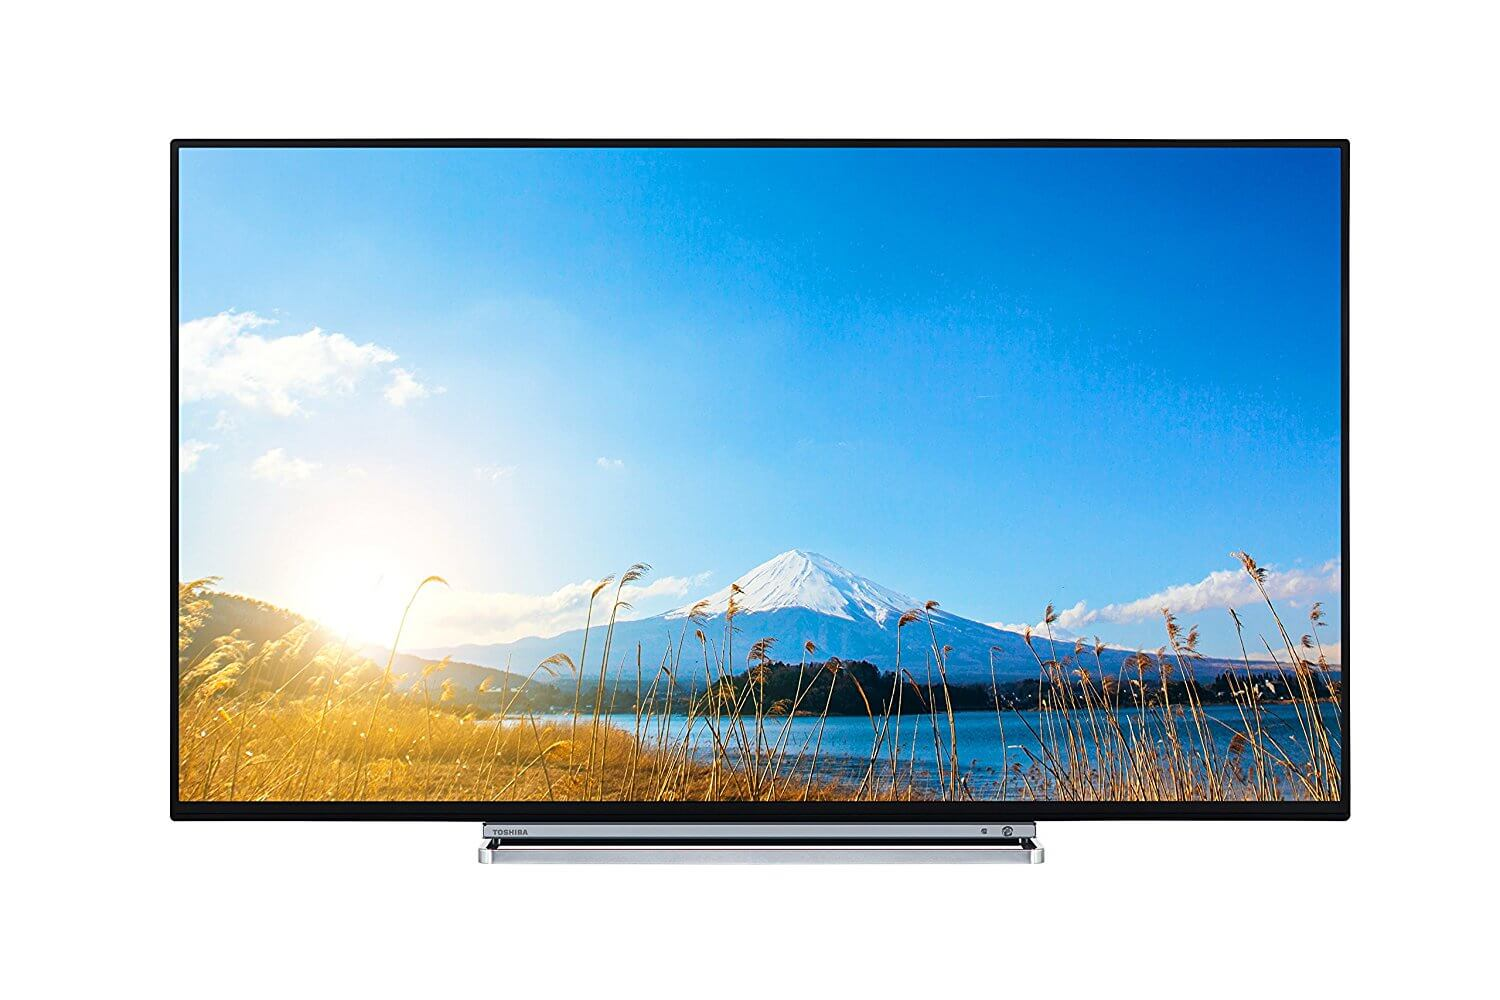 toshiba 49 4k uhd smart tv 49l621u review